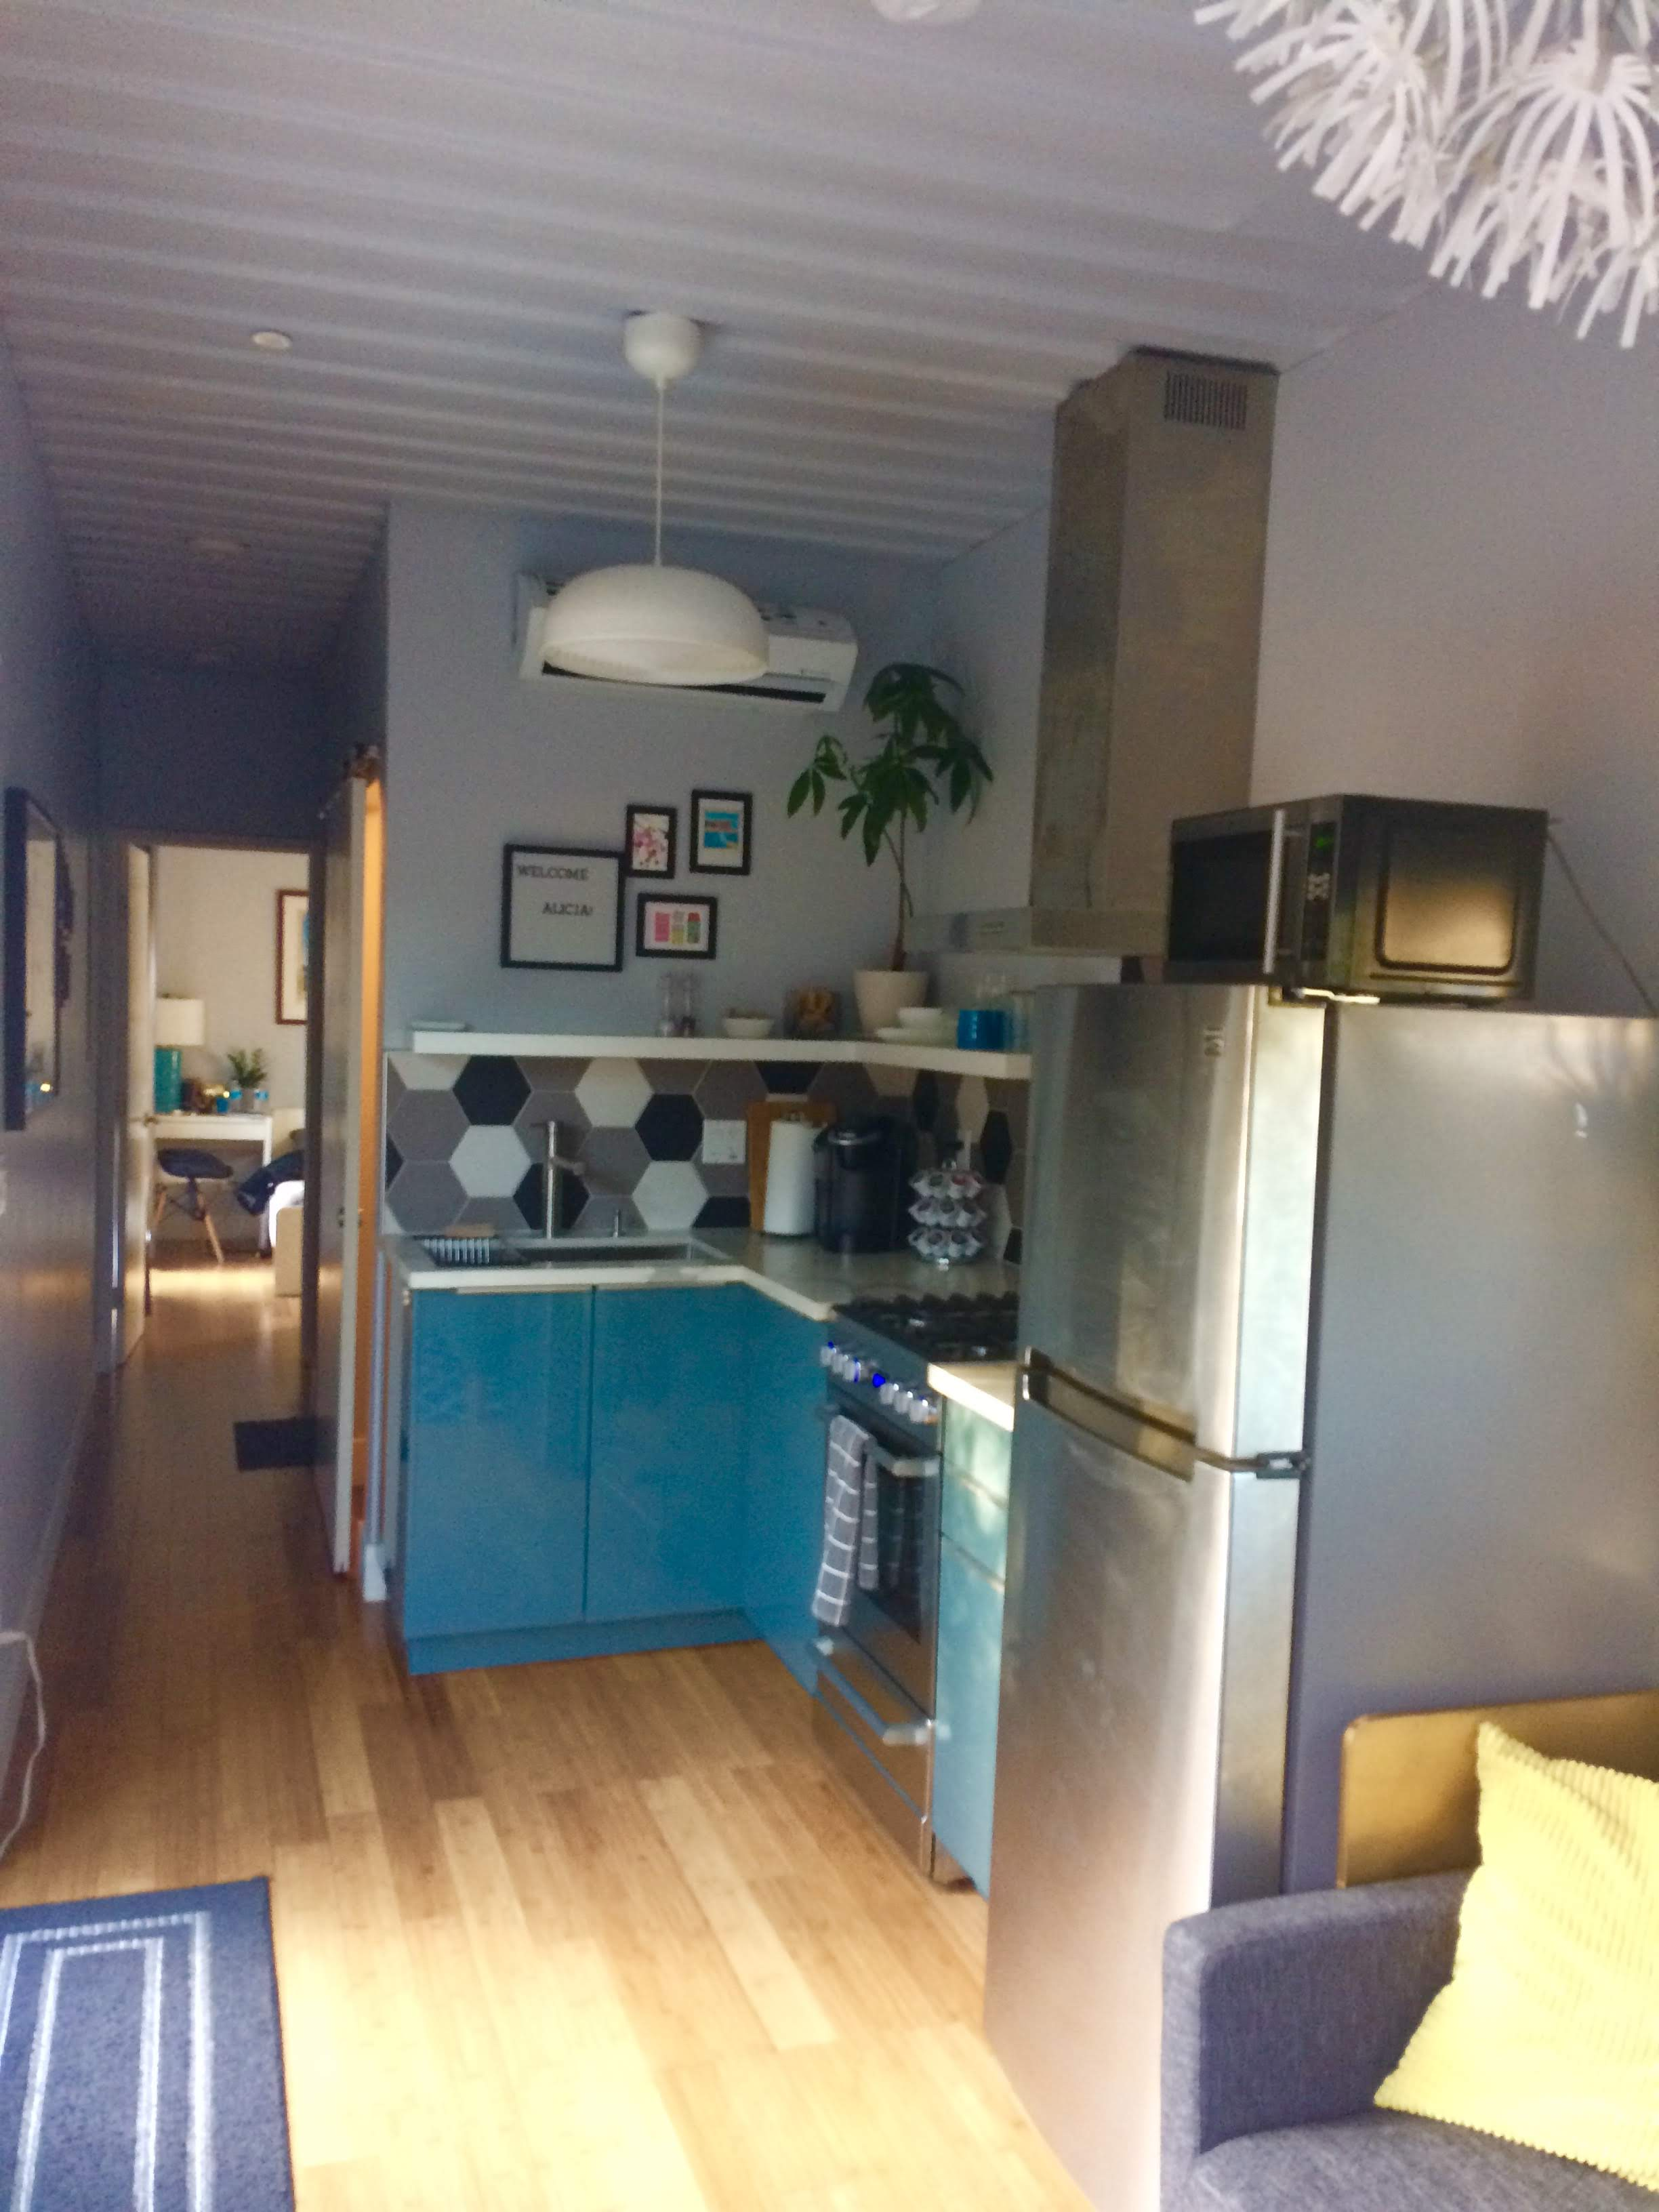 tiny travel chick indoor things to do in sacramento container home kitchen